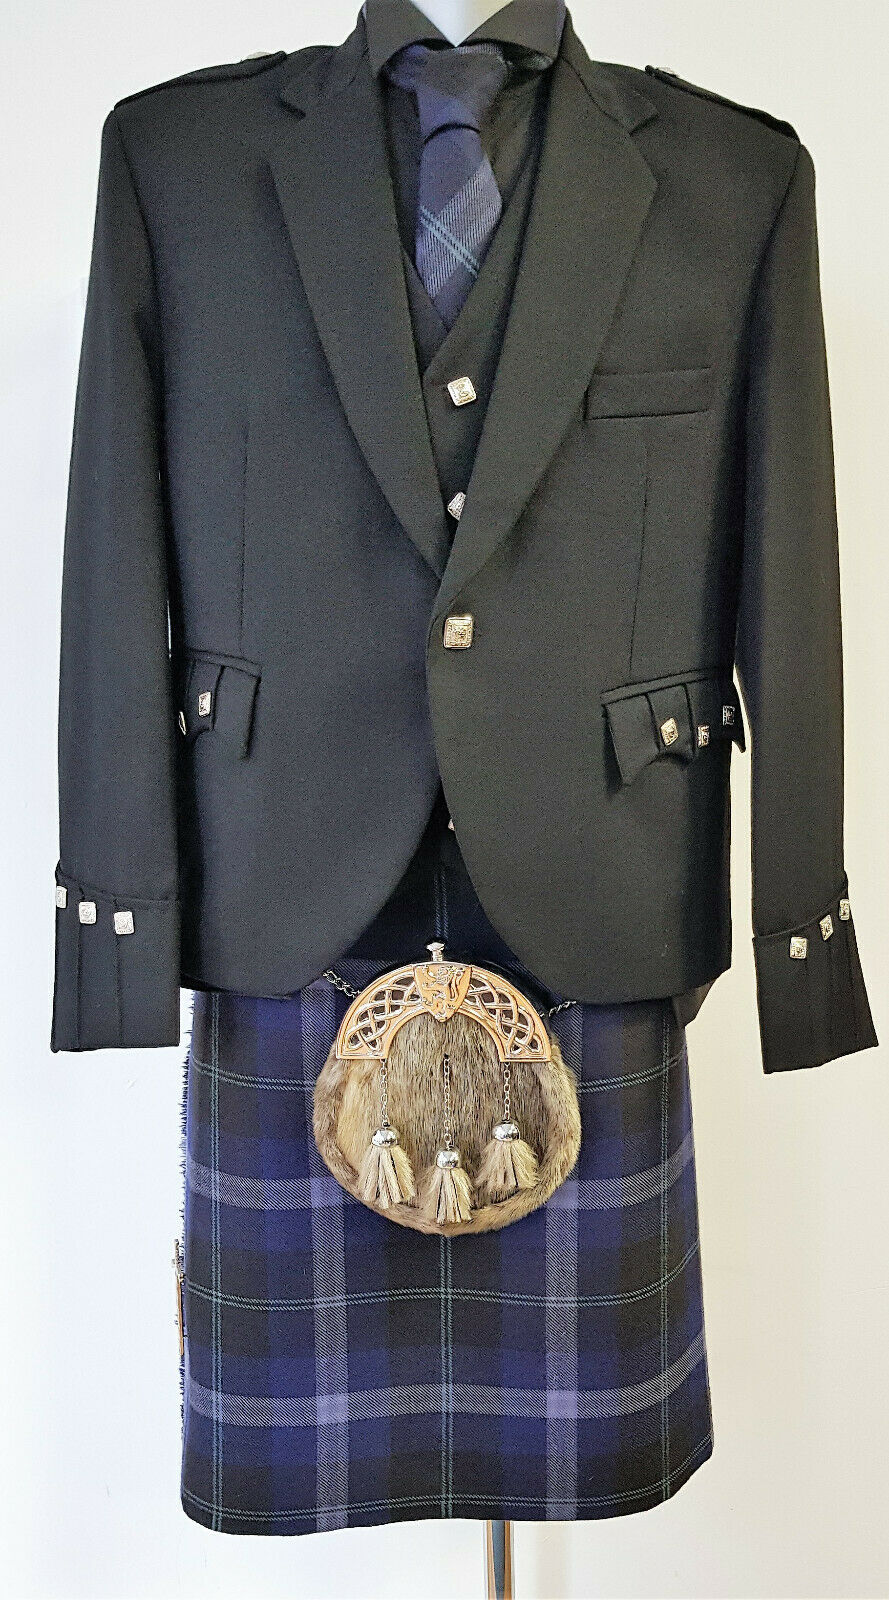 Chieftain Passion Of Scotland Platinum 8 Yard DELUXE Kilt Exclusive to us